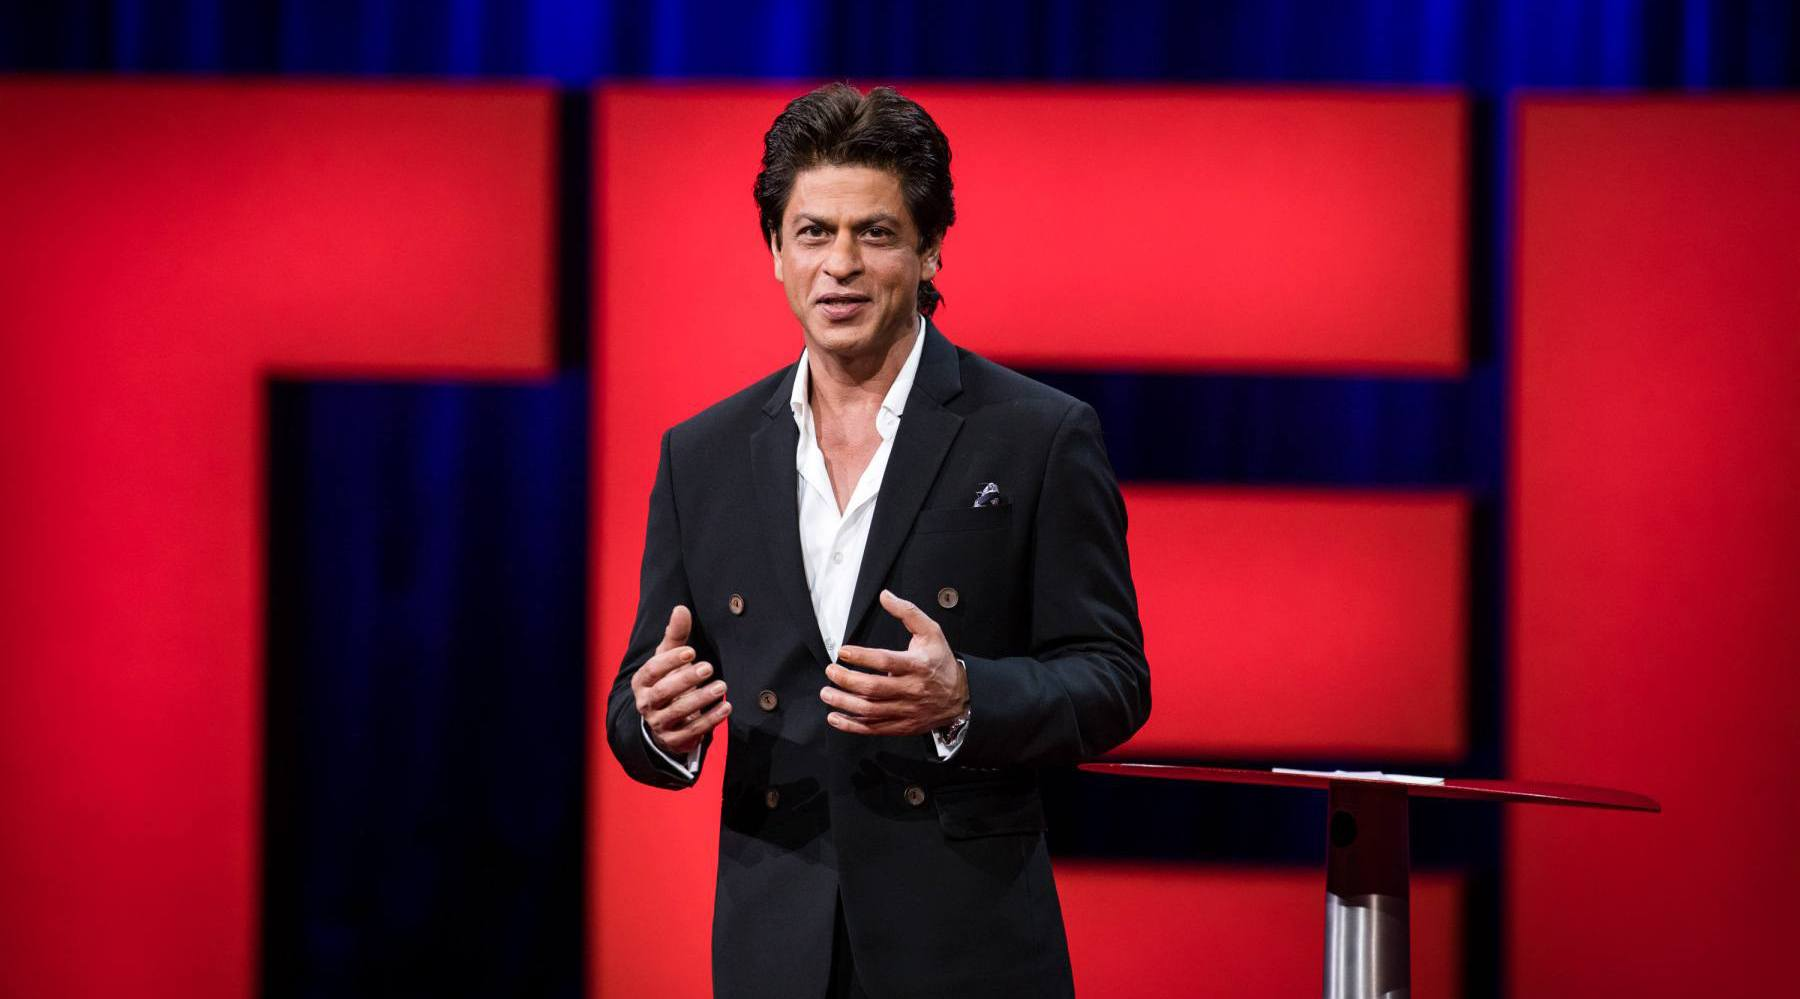 Bollywood star shah rukh khan giving his ted talk in vancouver ted